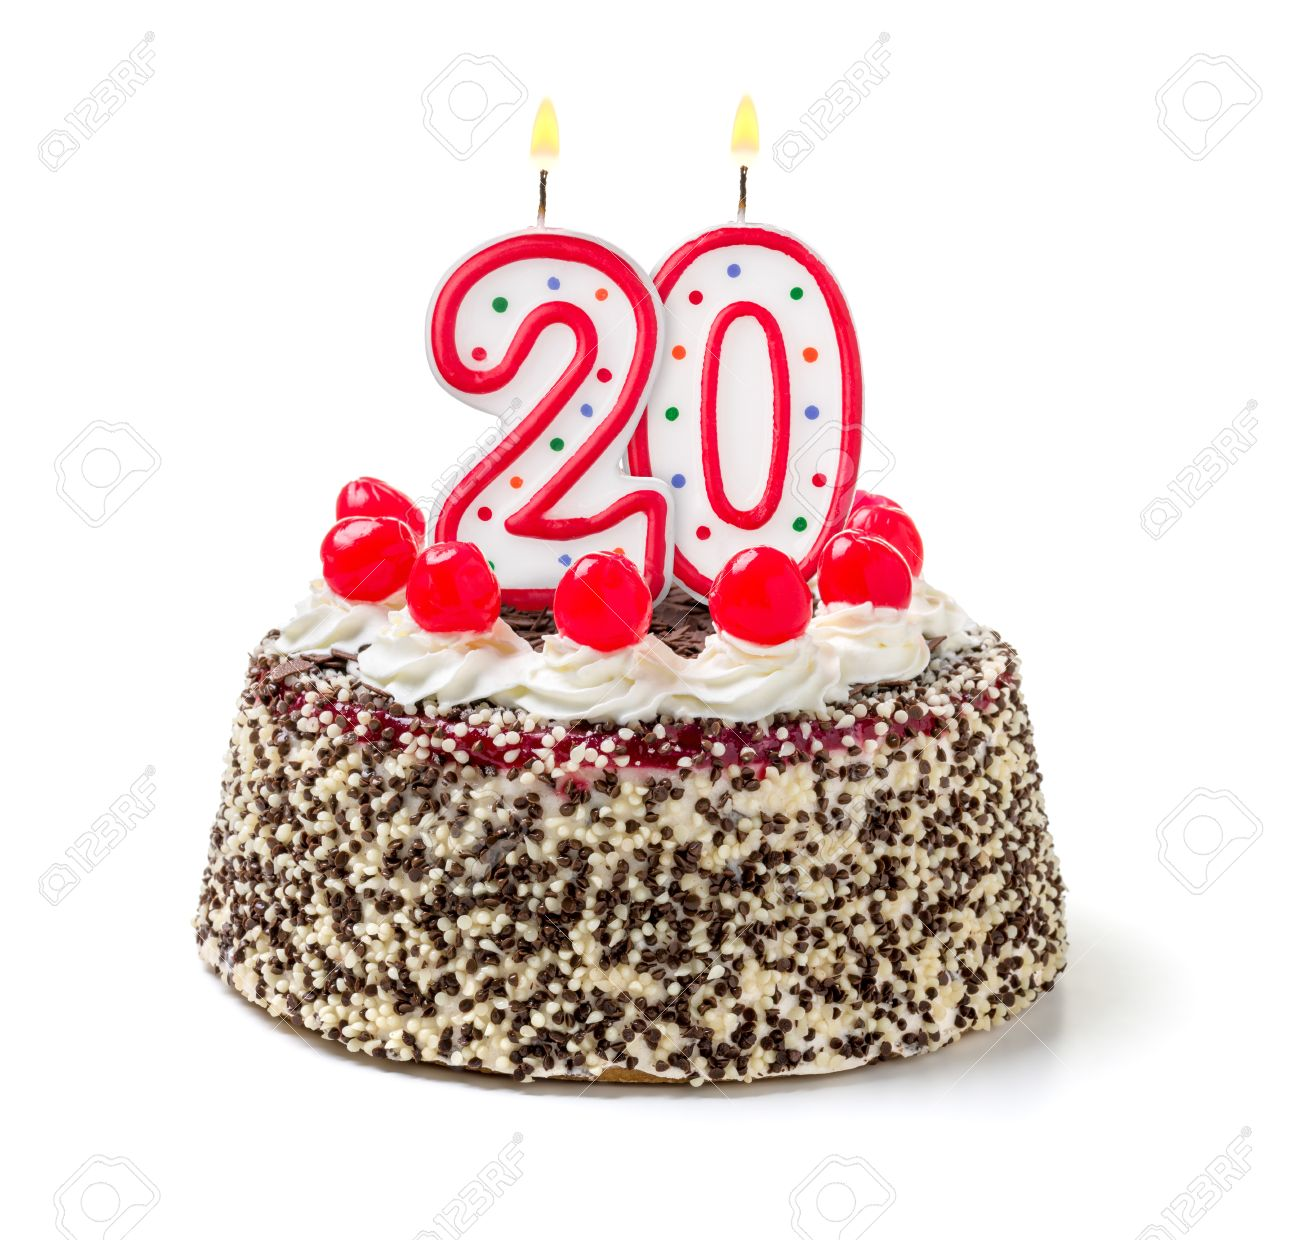 Surprising Birthday Cake With Burning Candle Number 20 Stock Photo Picture Birthday Cards Printable Benkemecafe Filternl